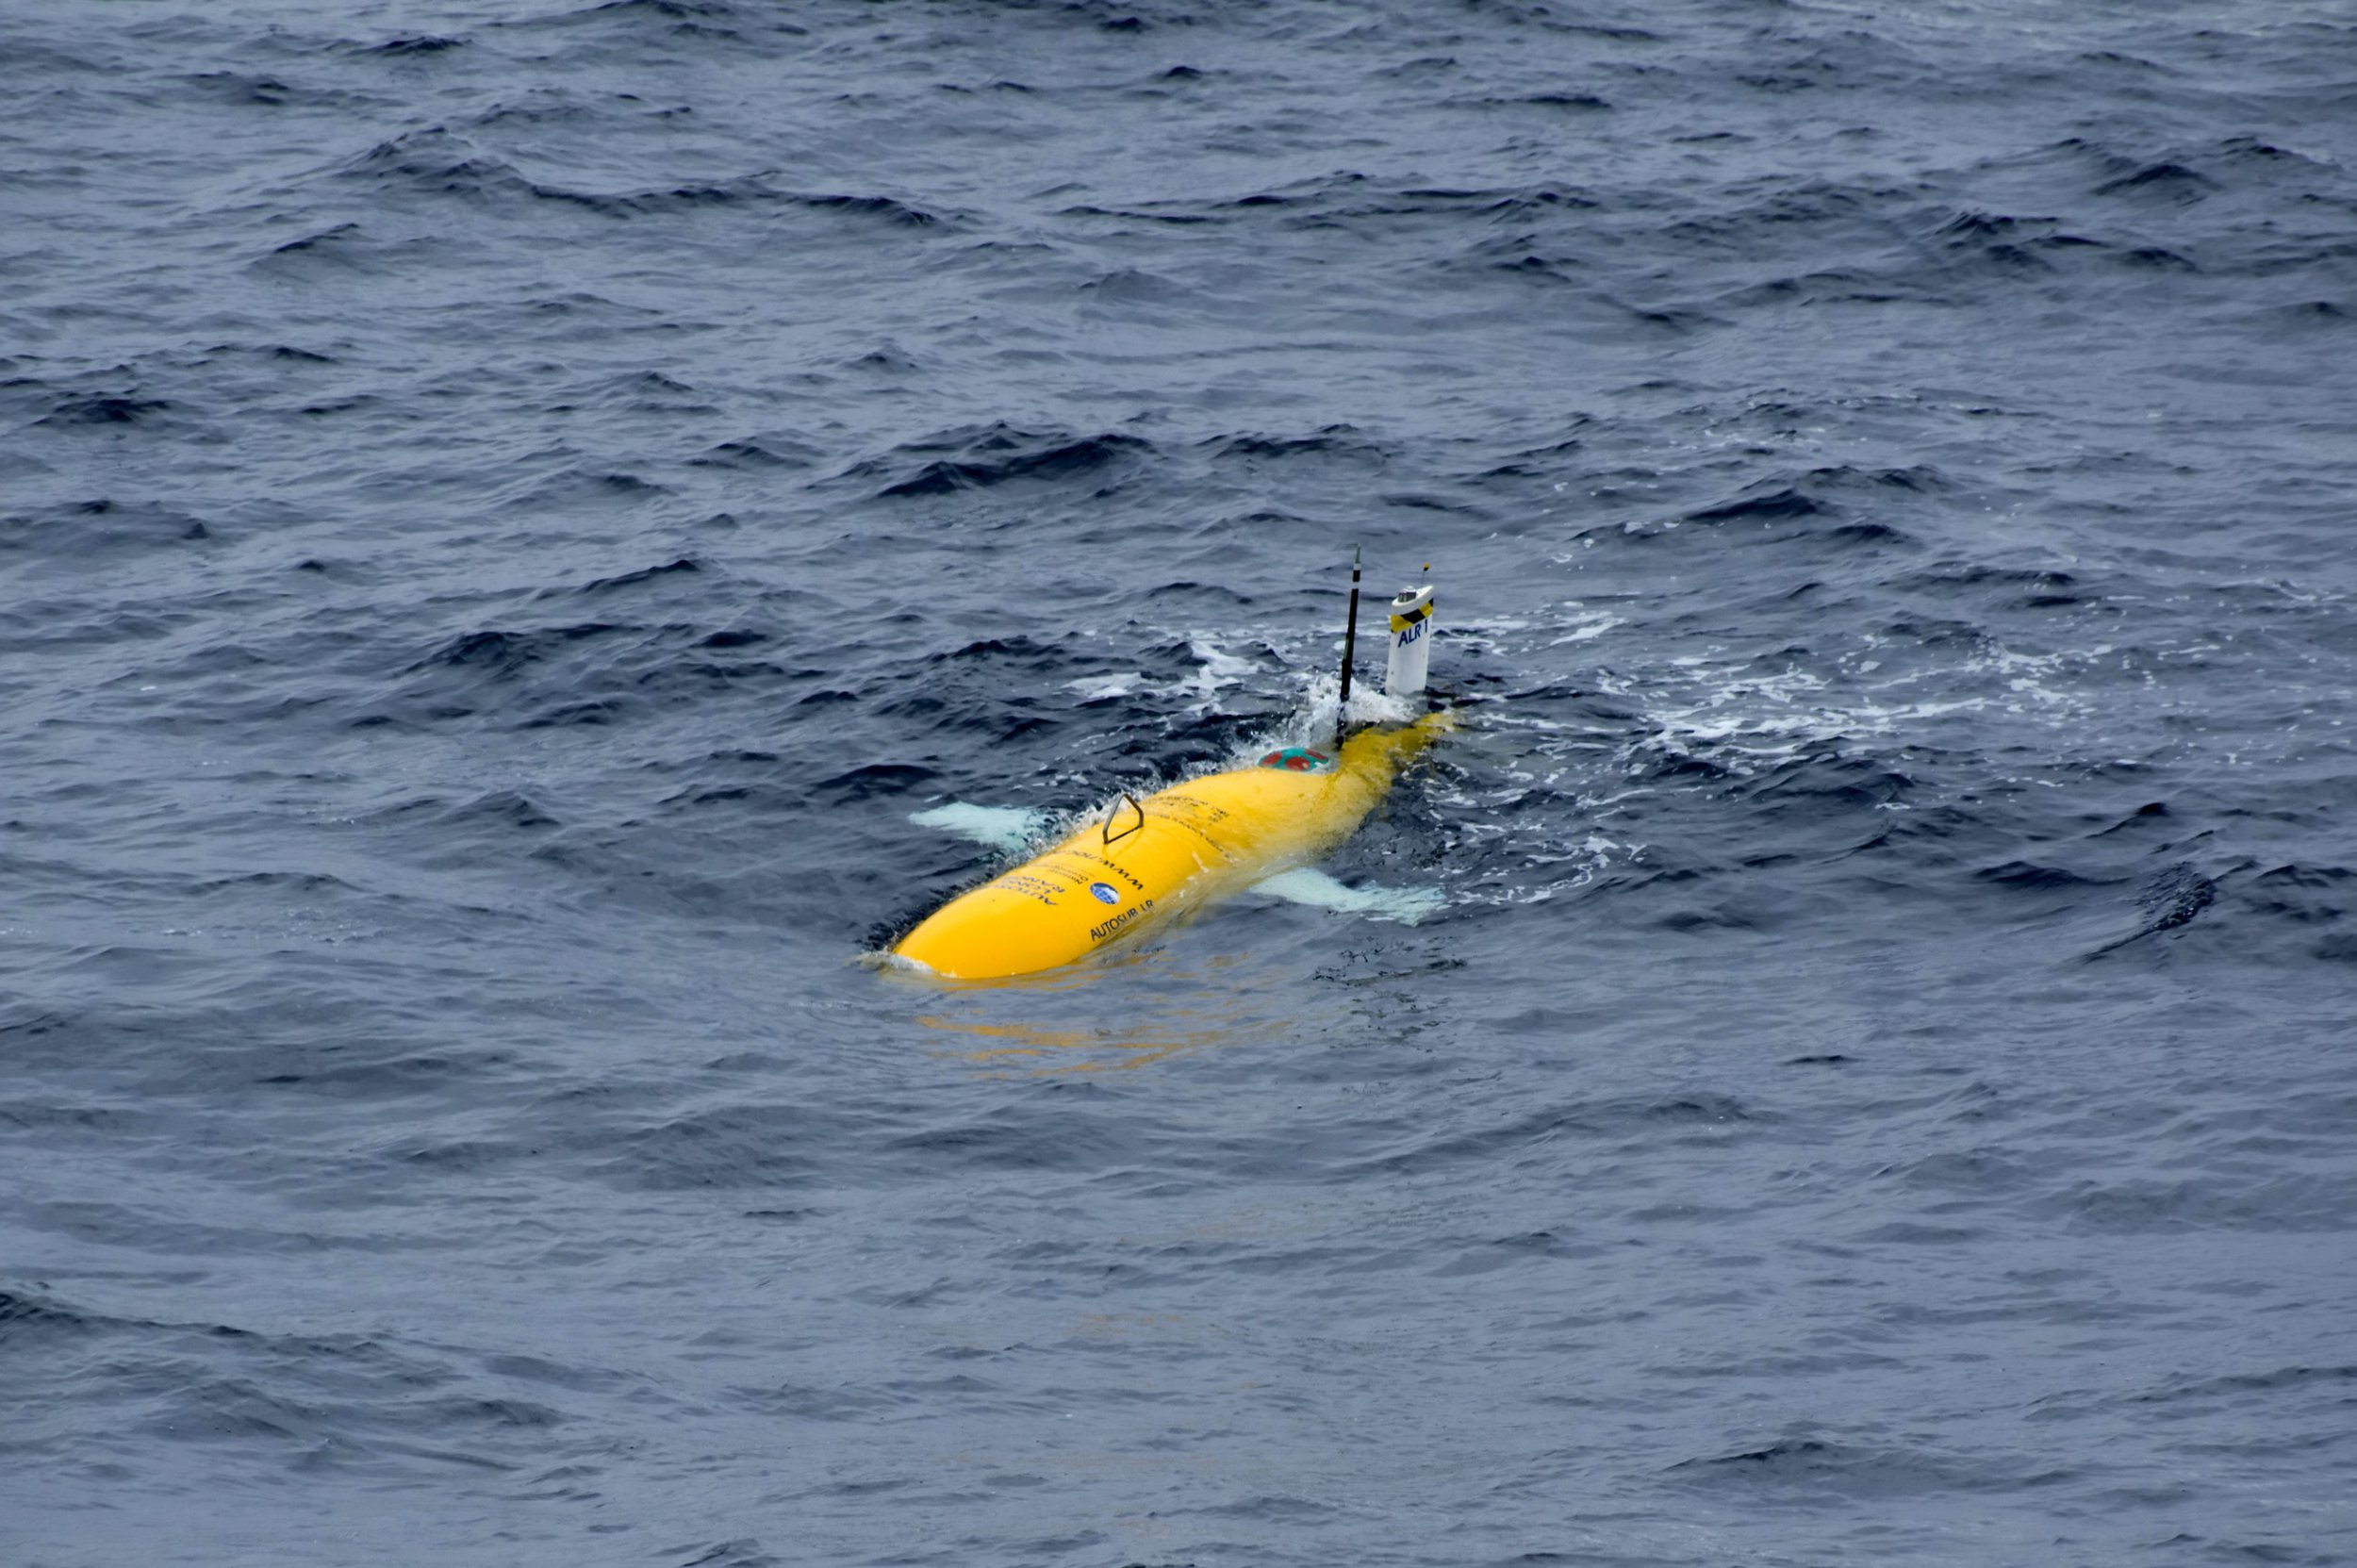 EMBARGOED FOR RELEASE: 17-JUN-2019 15:00 ET (17-JUN-2019 19:00 GMT/UTC) The unconstrained submarine automobile Autosub Long Range (better famous as Boaty McBoatface) on a initial goal to investigate temperatures during a bottom of a Southern Ocean. Apr 2017. The underling successfully collected information that will assistance meridian scientists build some-more accurate predictions of a effects of meridian change on rising sea levels. See National News story NNboatface. Boaty McBoatface's lass goal has helped learn a pivotal routine joining augmenting Antarctic winds to rising sea temperatures. Climate scientists contend that information collected from a publicly-named submarines's initial speed will assistance them build some-more accurate predictions of a effects of meridian change on rising tellurian sea levels.Boaty McBoatface is a lead vessel of a Autosub Long Range-class of unconstrained underwater vehicles (AUVs) used for systematic research. It us carried on a investigate vessel RRS Sir David Attenborough owned by a Natural Environment Research Council (NERC) and operated by a British Antarctic Survey (BAS).